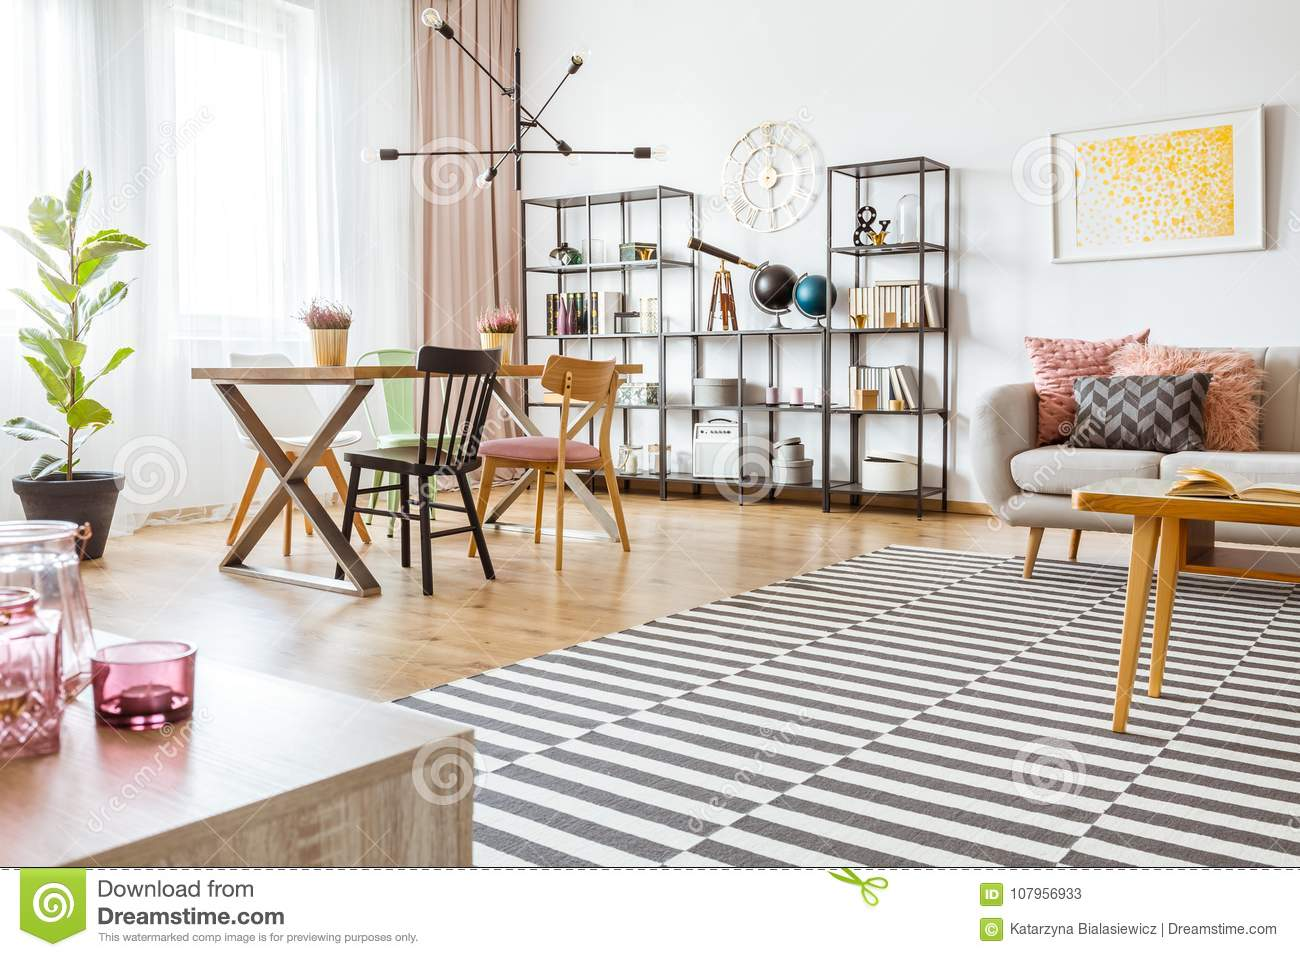 Spacious Living Room Interior Stock Image - Image of couch, lamp ...